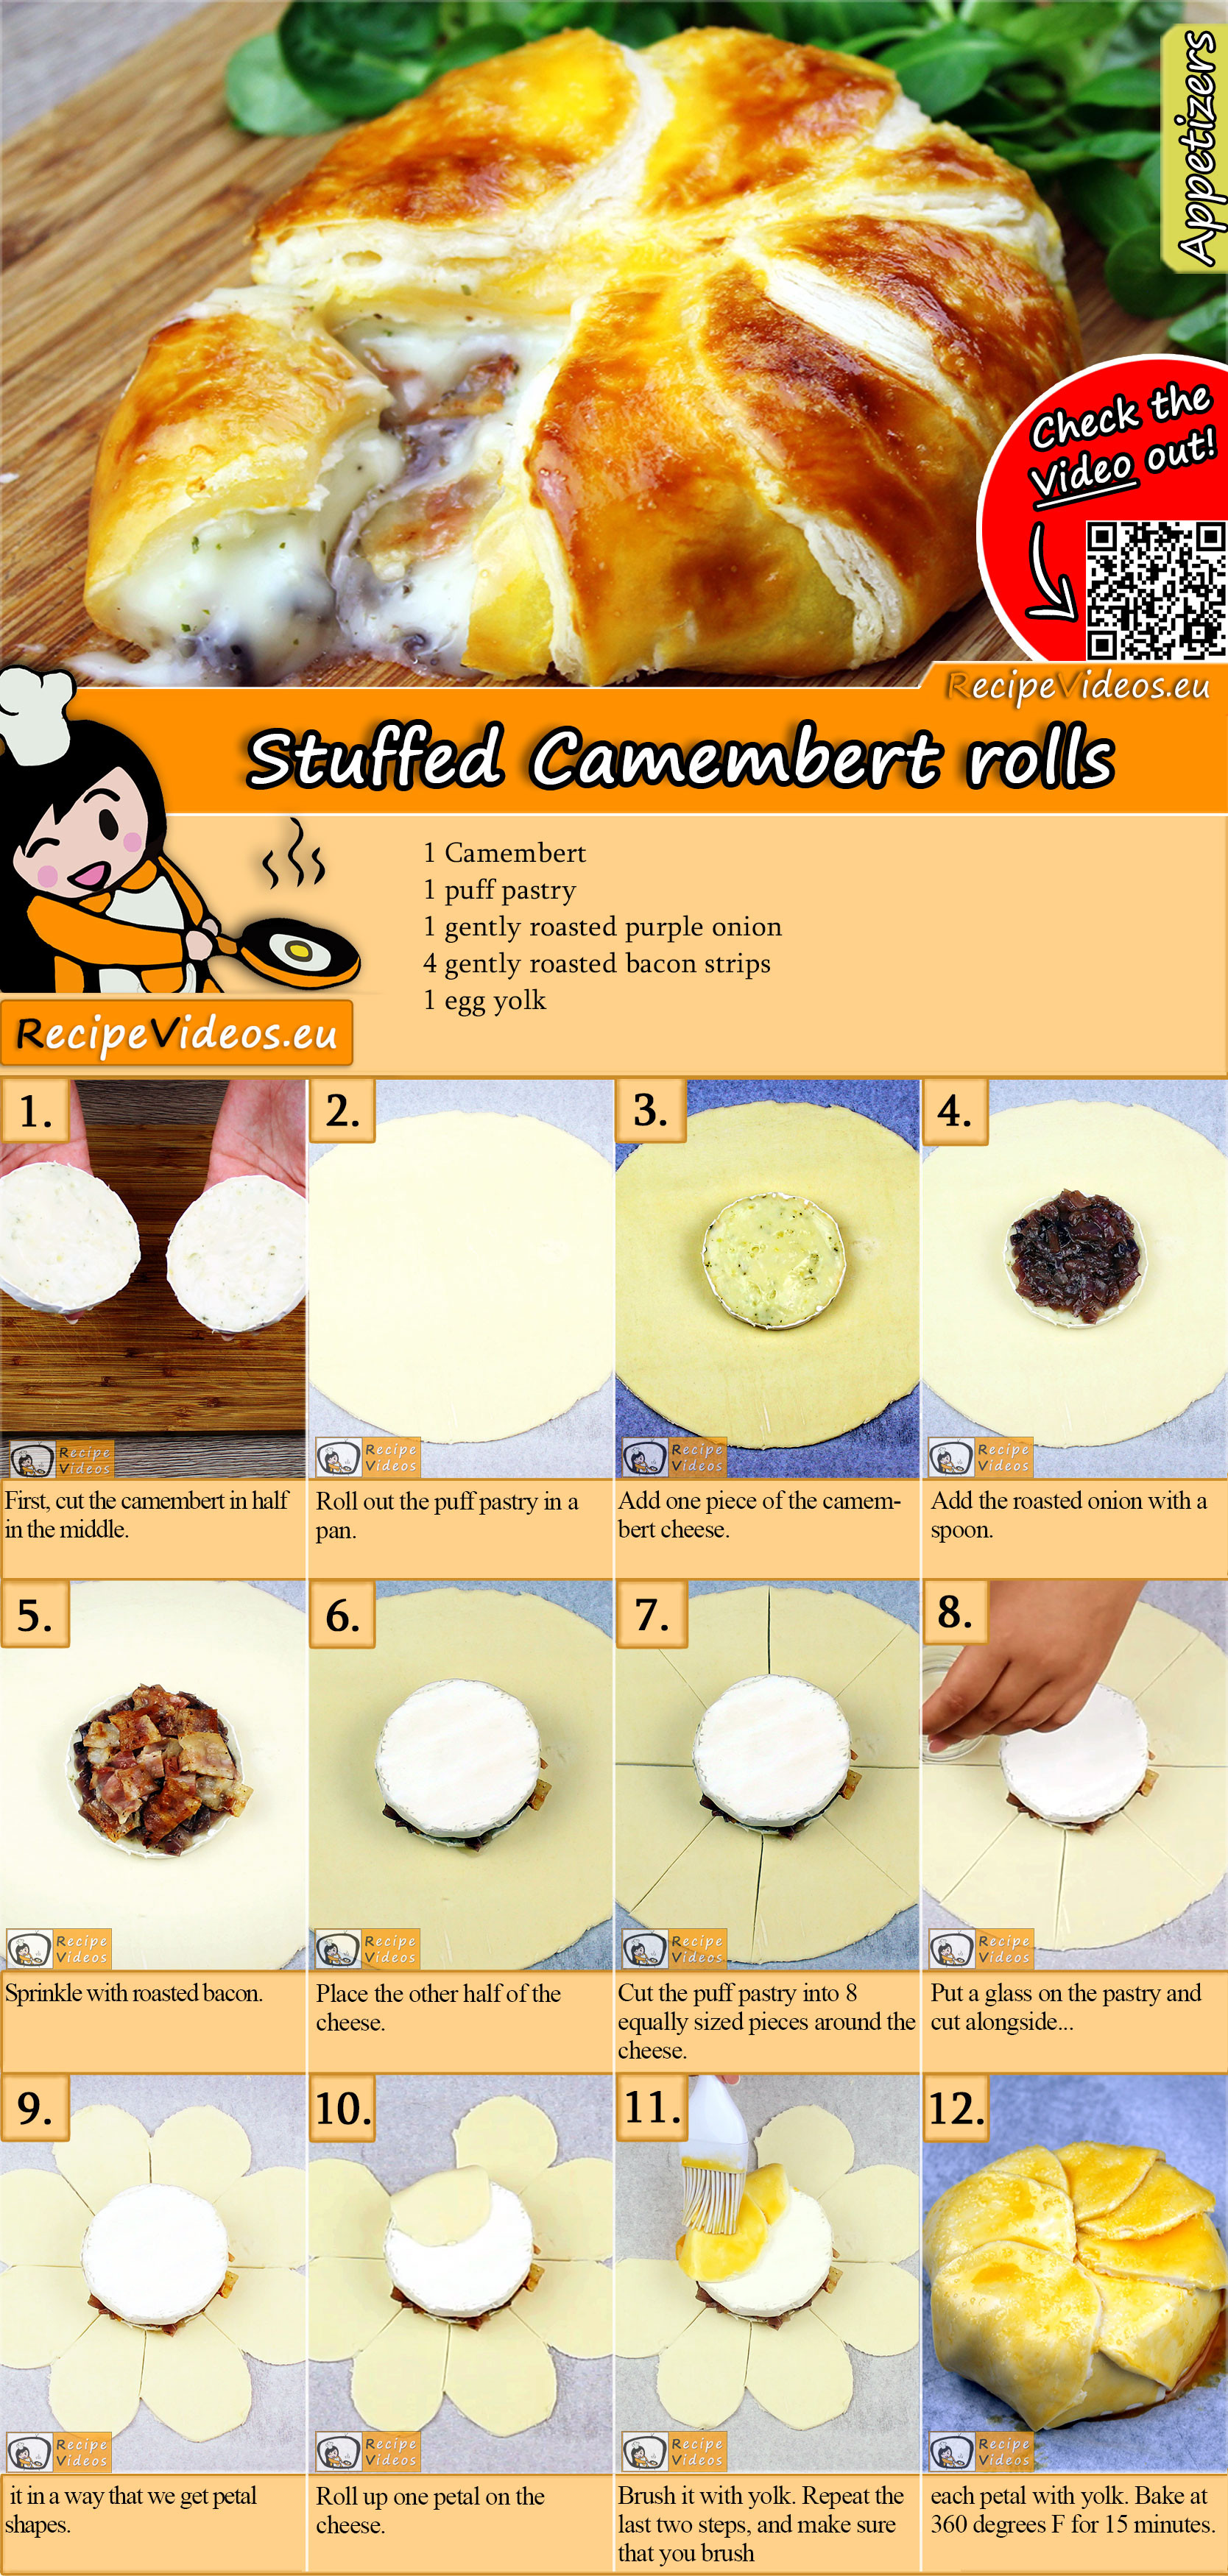 Stuffed Camembert rolls recipe with video